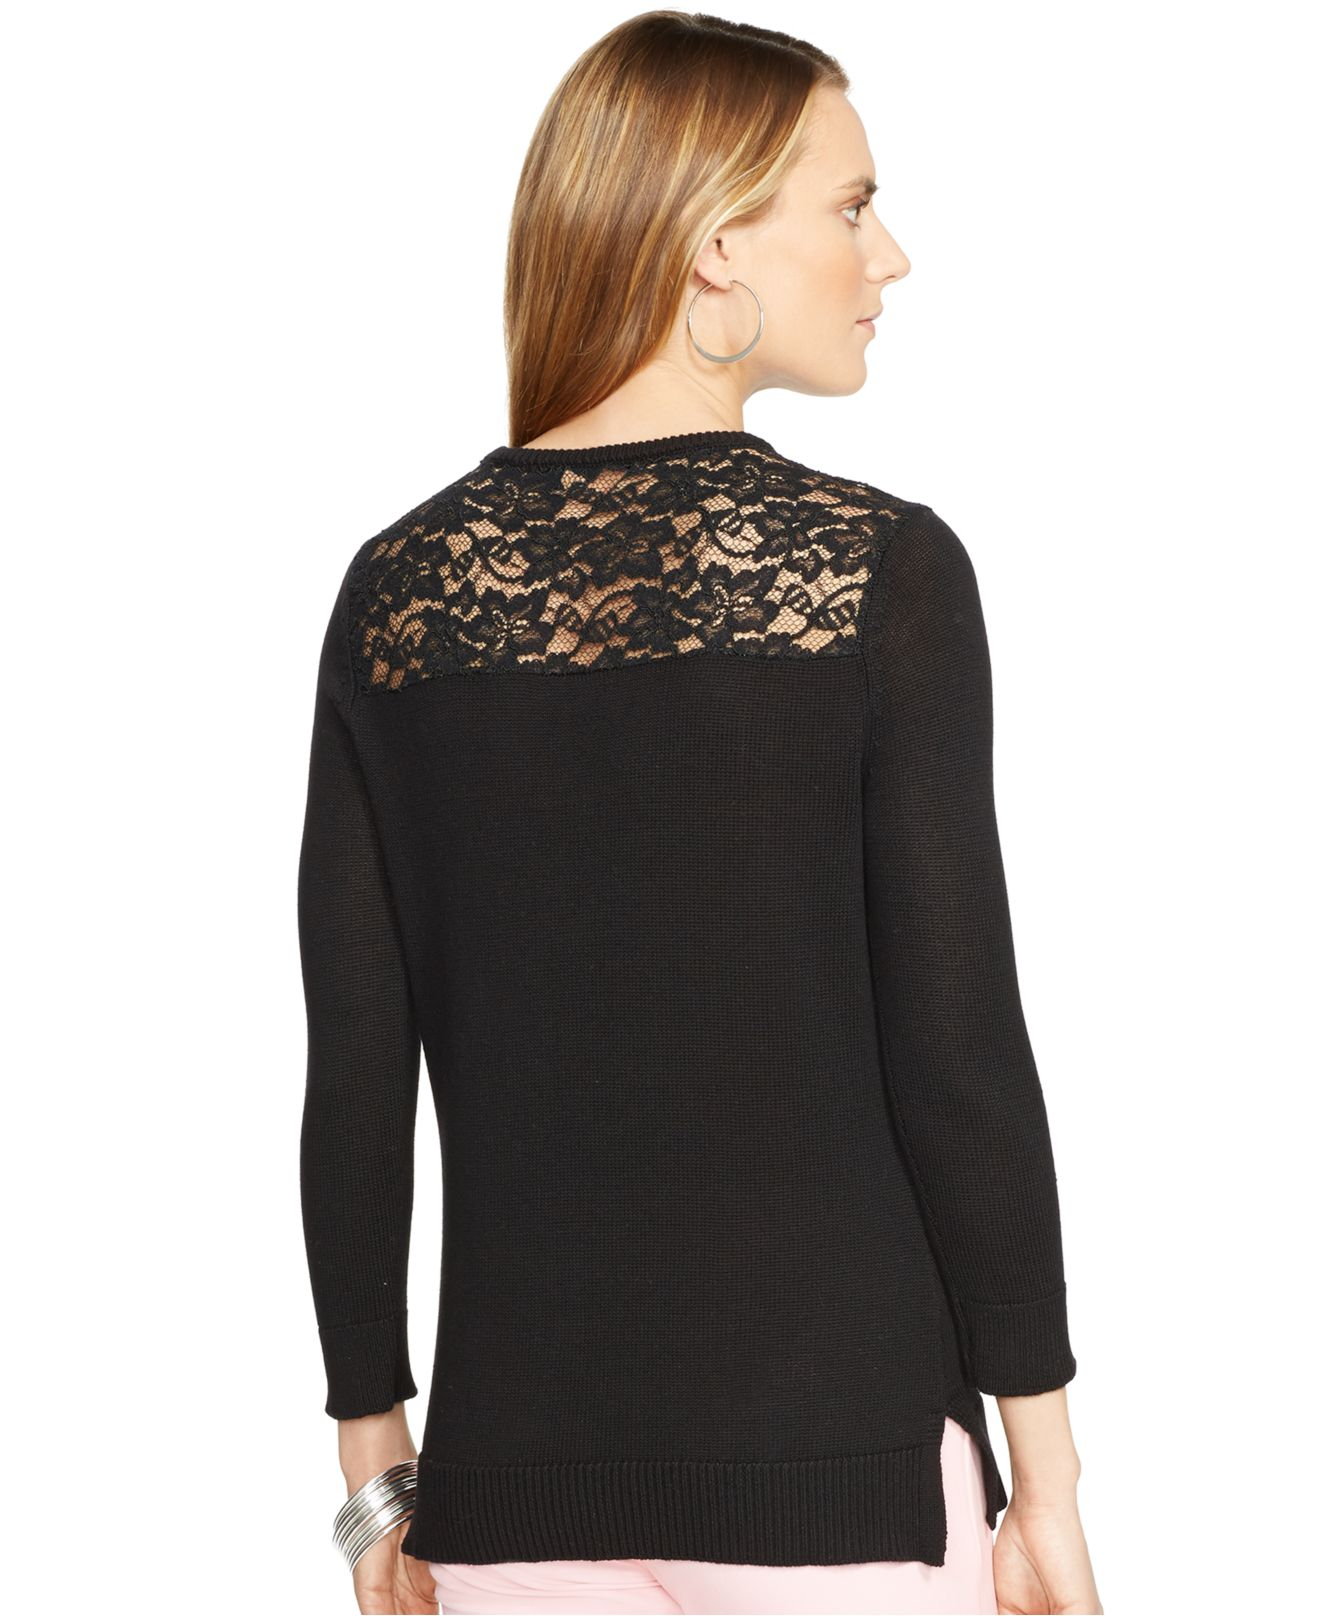 Lauren by ralph lauren Lace-Back Sweater in Black | Lyst